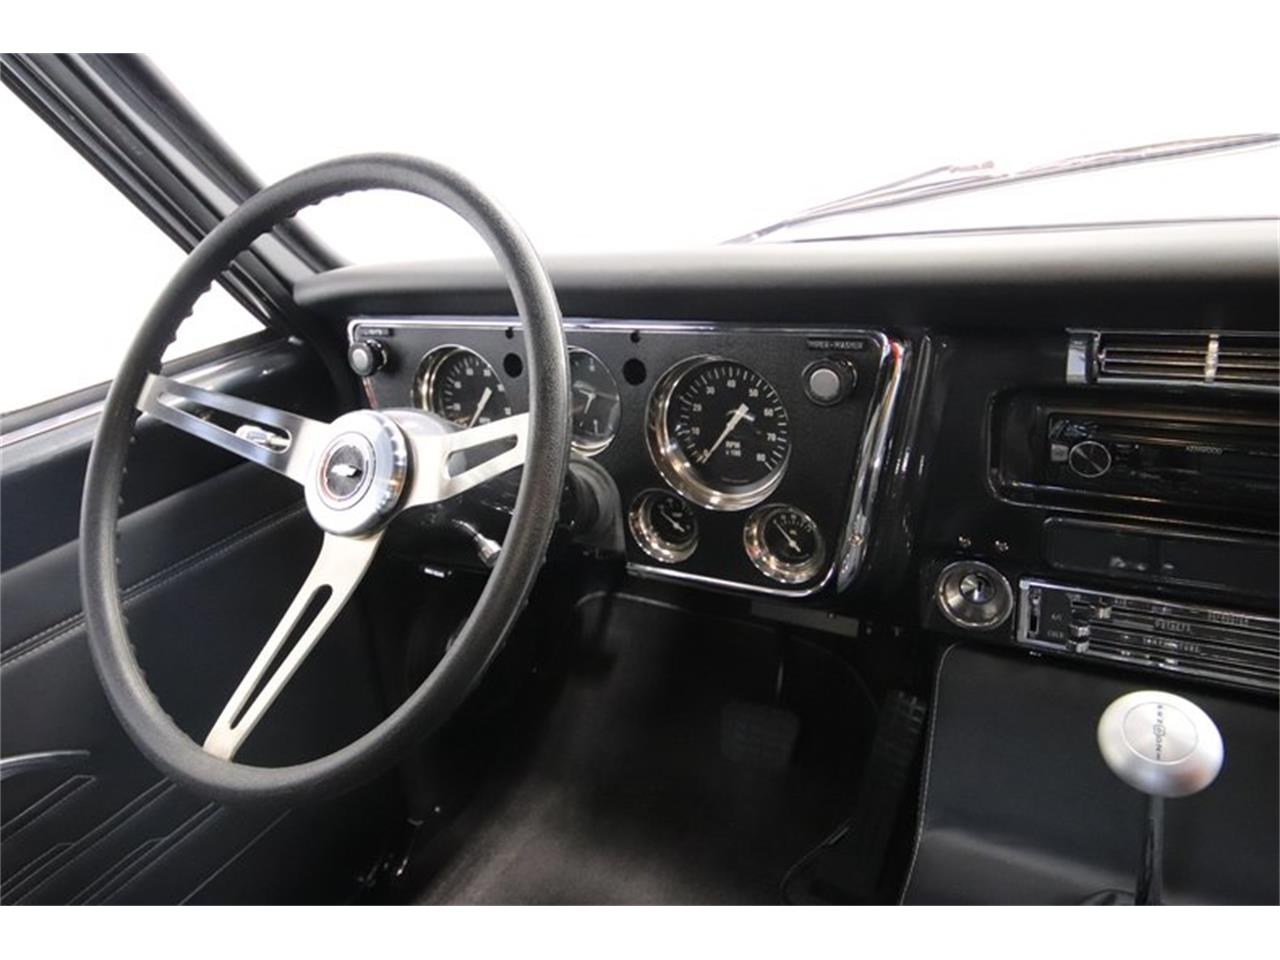 Large Picture of 1970 C10 located in Arizona - $58,995.00 Offered by Streetside Classics - Phoenix - NIMH